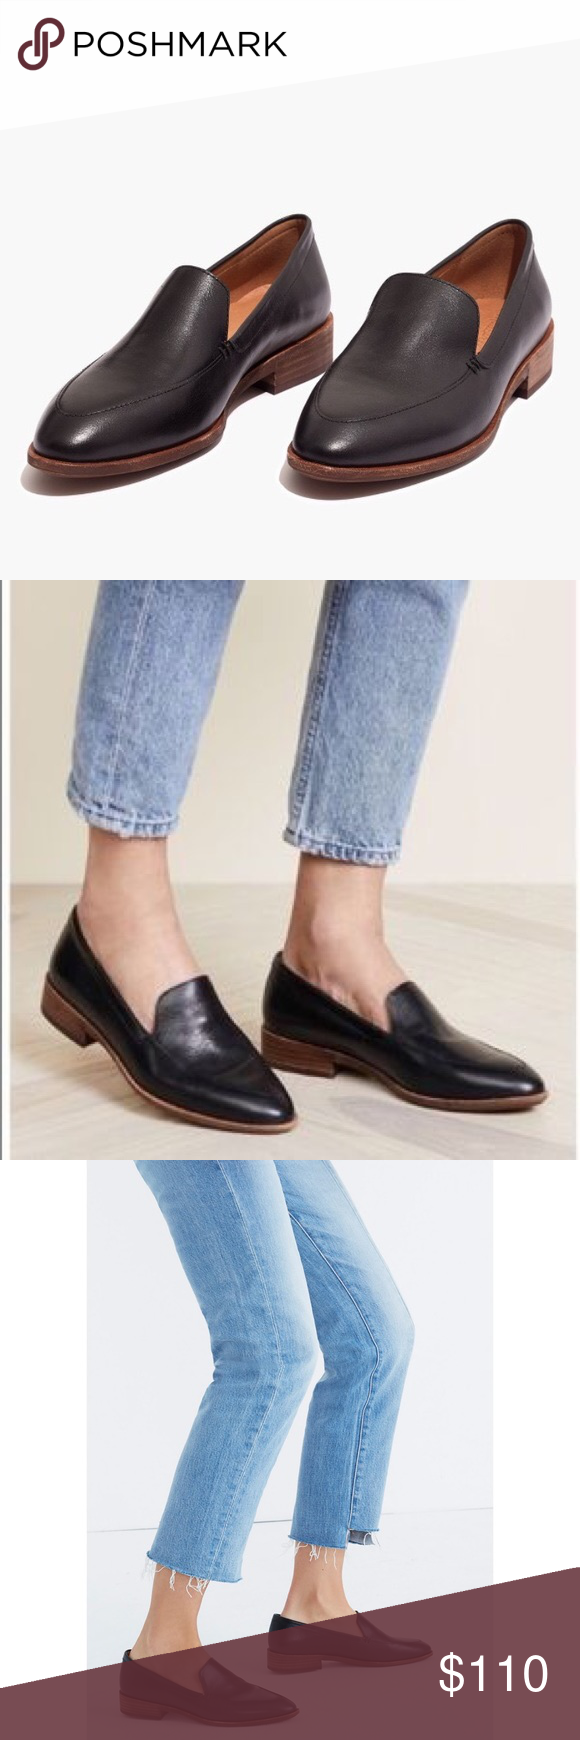 8b9ca465dad Madewell Frances 7 Black Leather Loafer Madewell Frances 7 Black Leather  Loafer Streamlined loafers in a